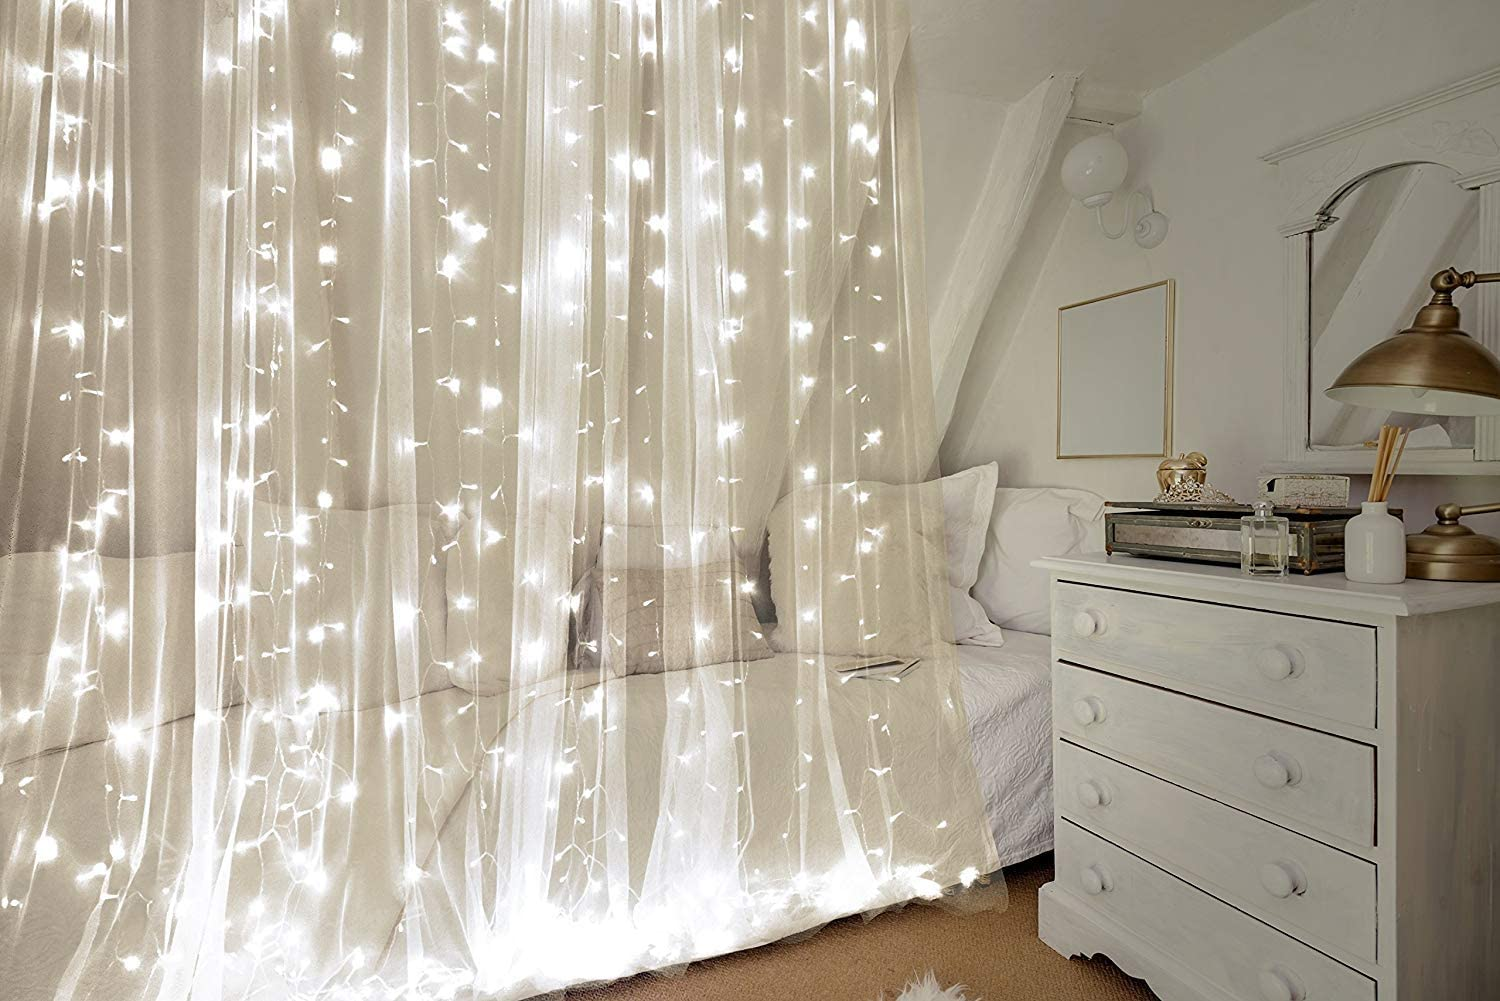 ProductWorks 18178 Brilliant Curtain LEDs 300 Lights 8 Function Translucent Cord, 9.8' x 10', Cool White